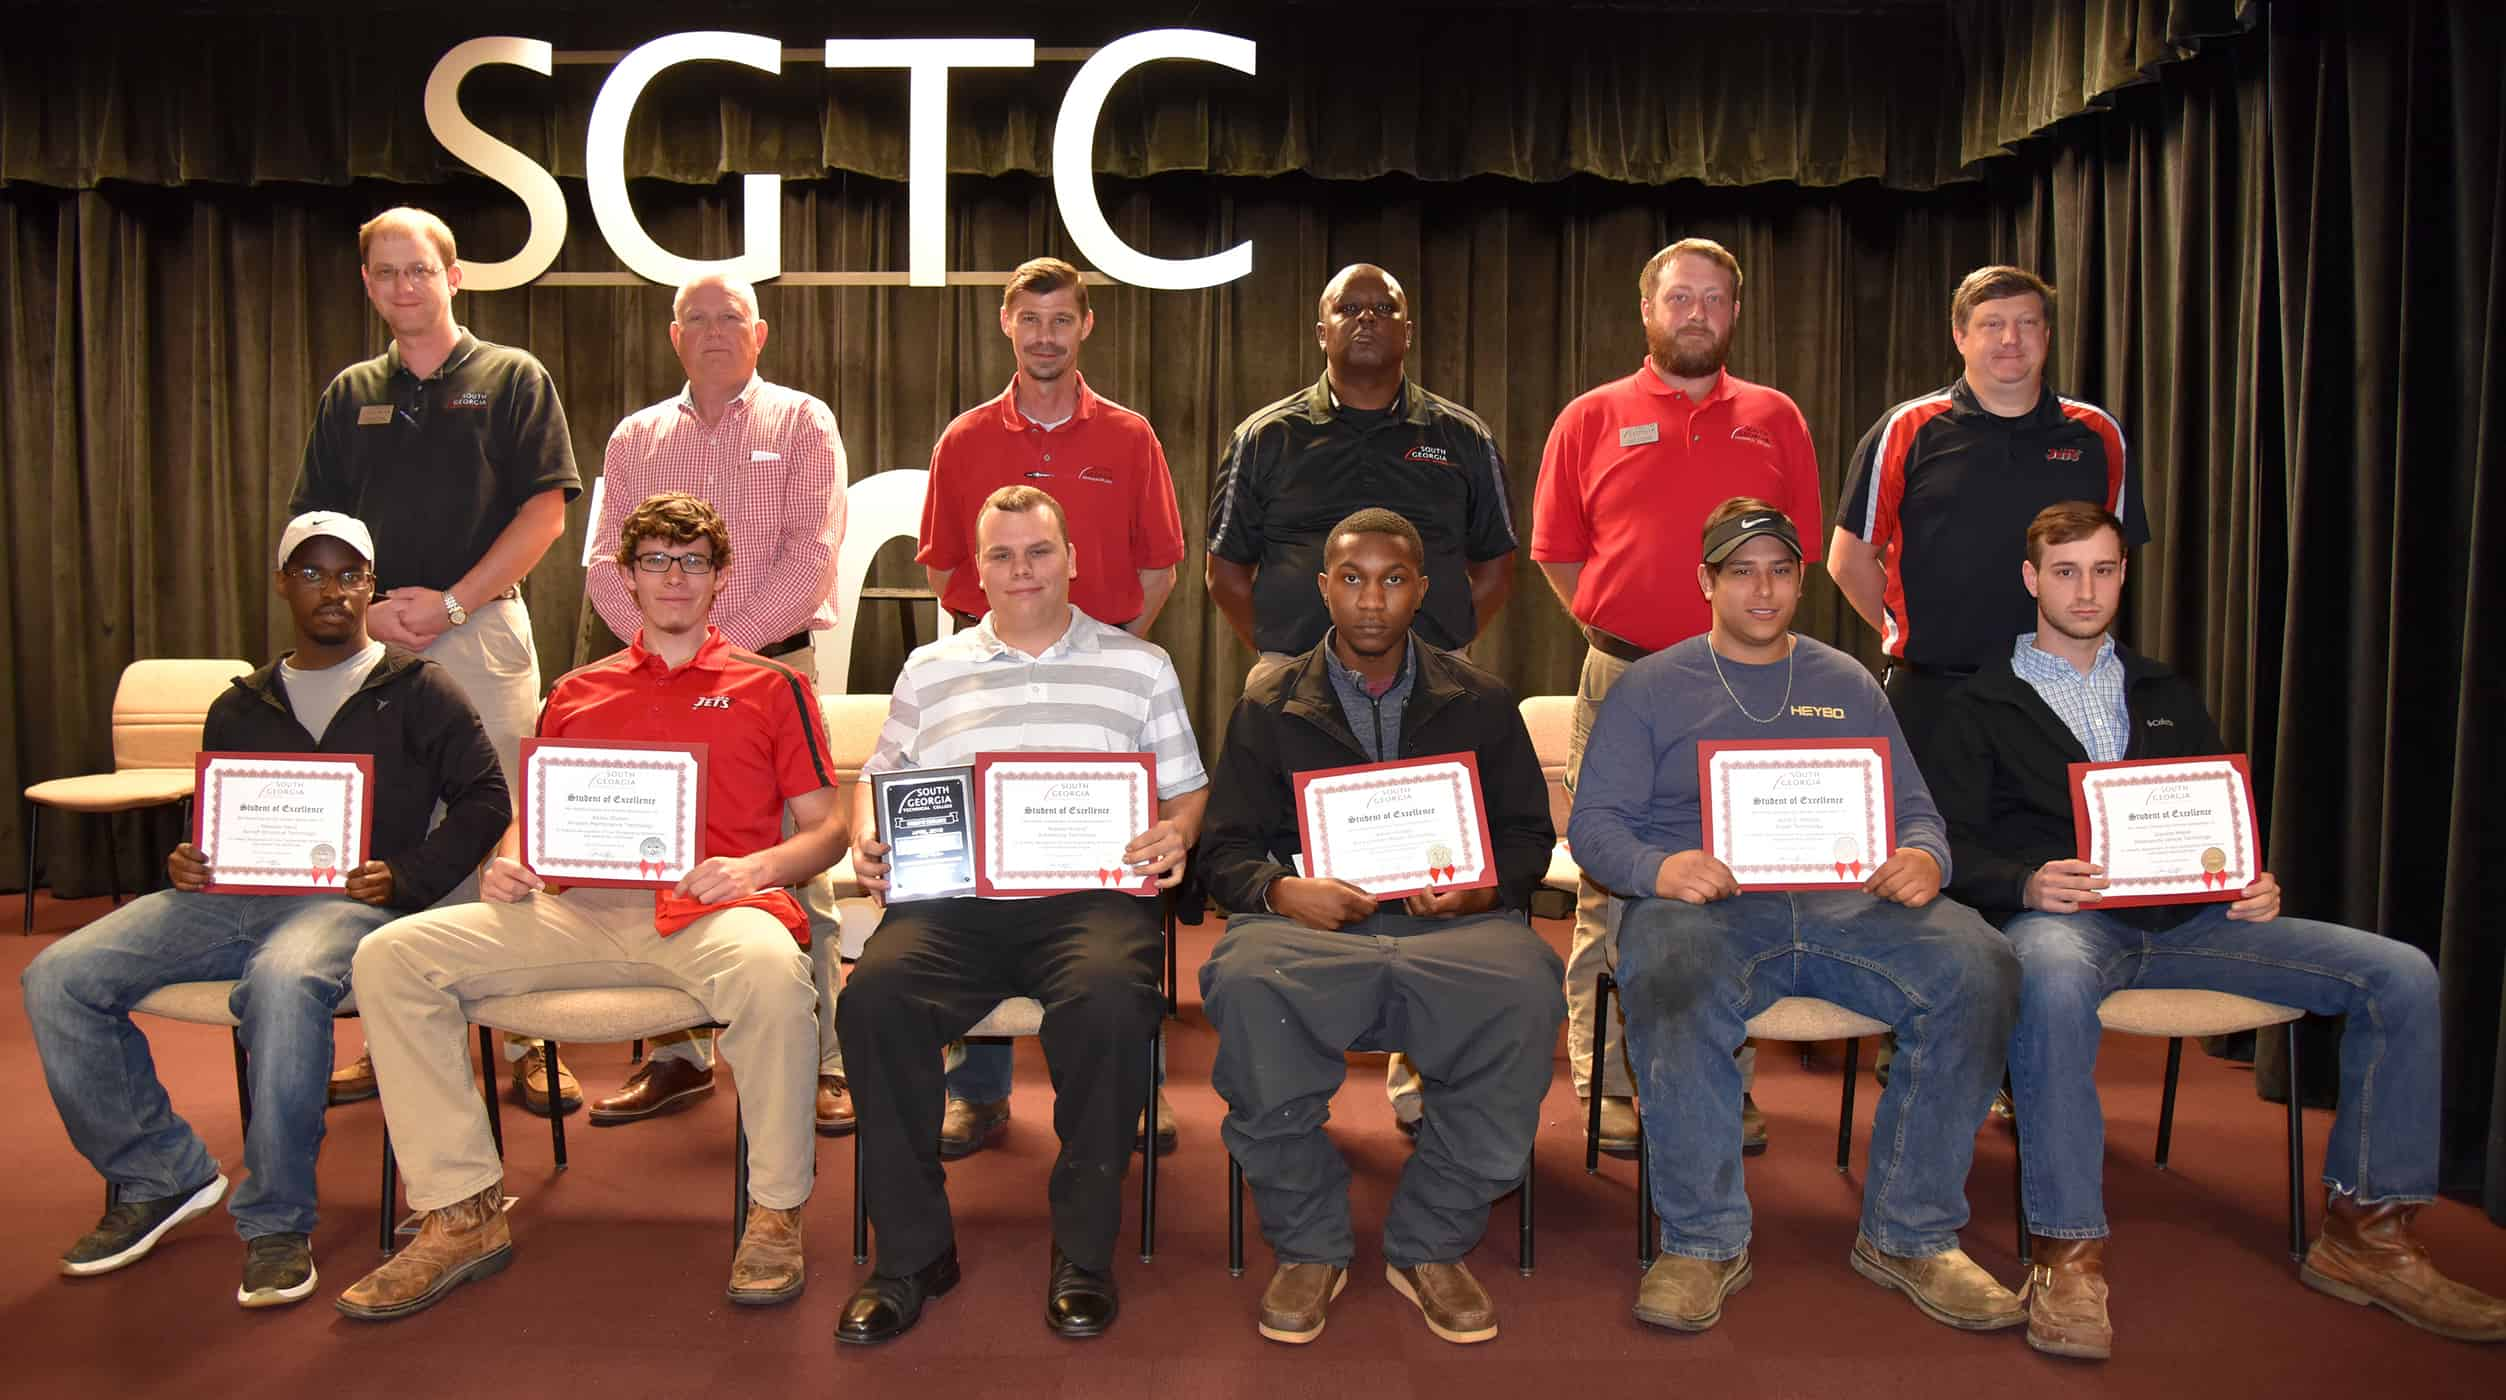 Six males sit in a row of chairs holding certificates. Behind them stand six males.